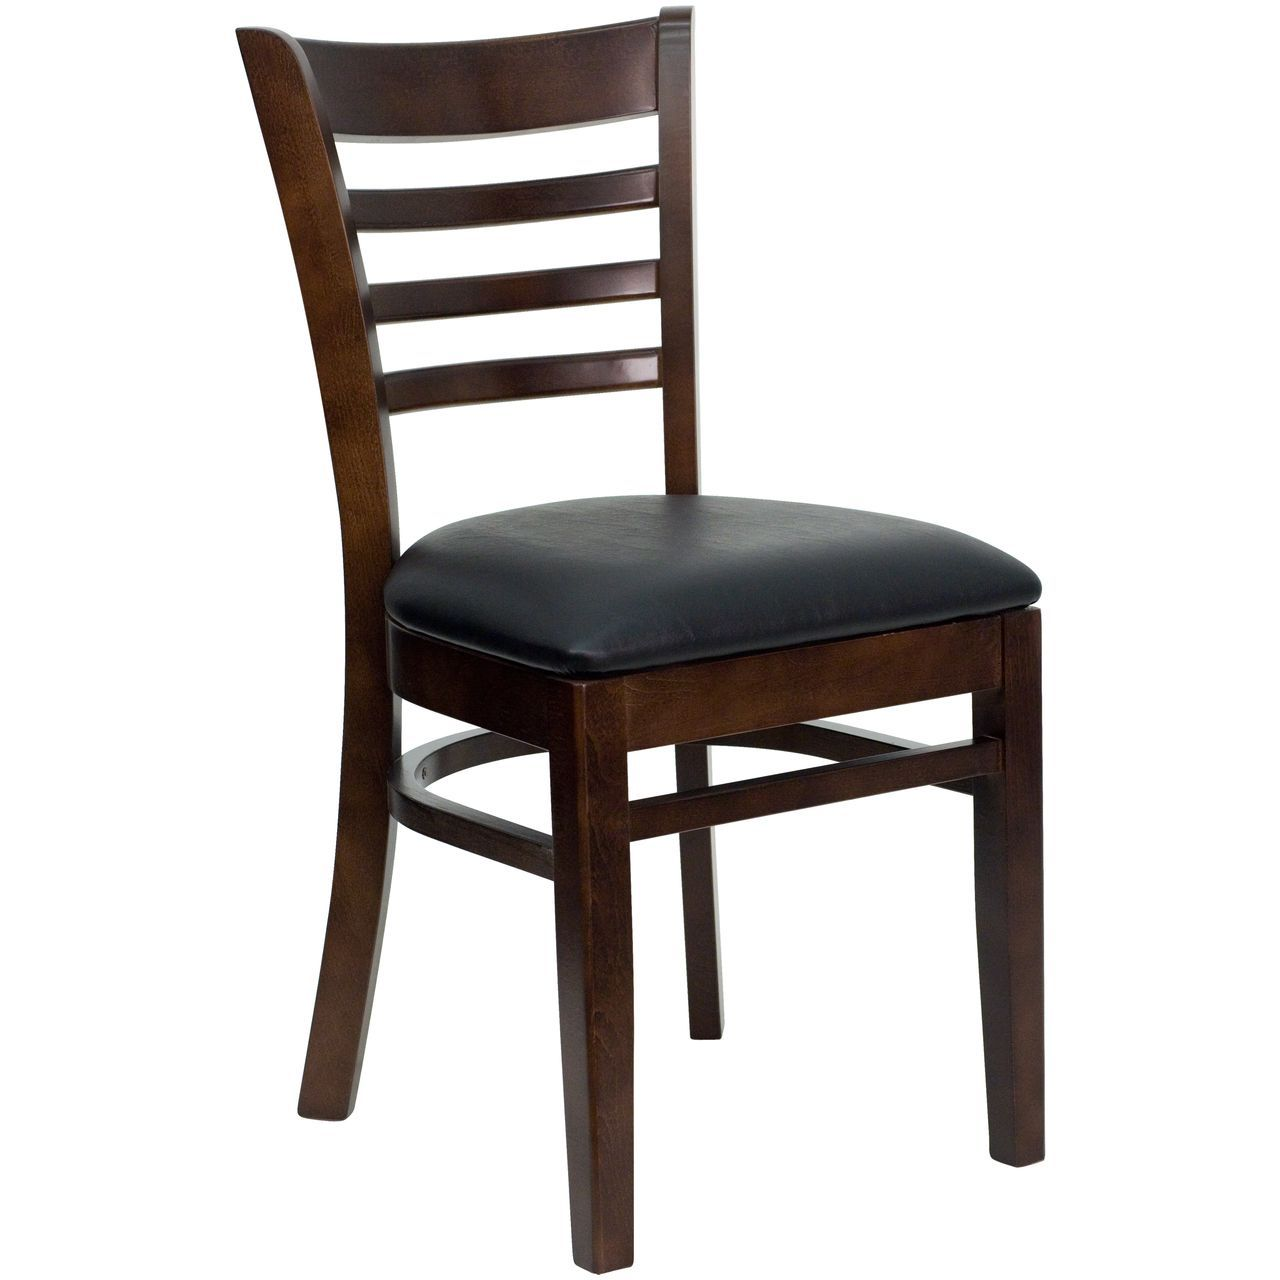 The Ladder Back Wood Chair Restaurant Chairs Are Both Traditional